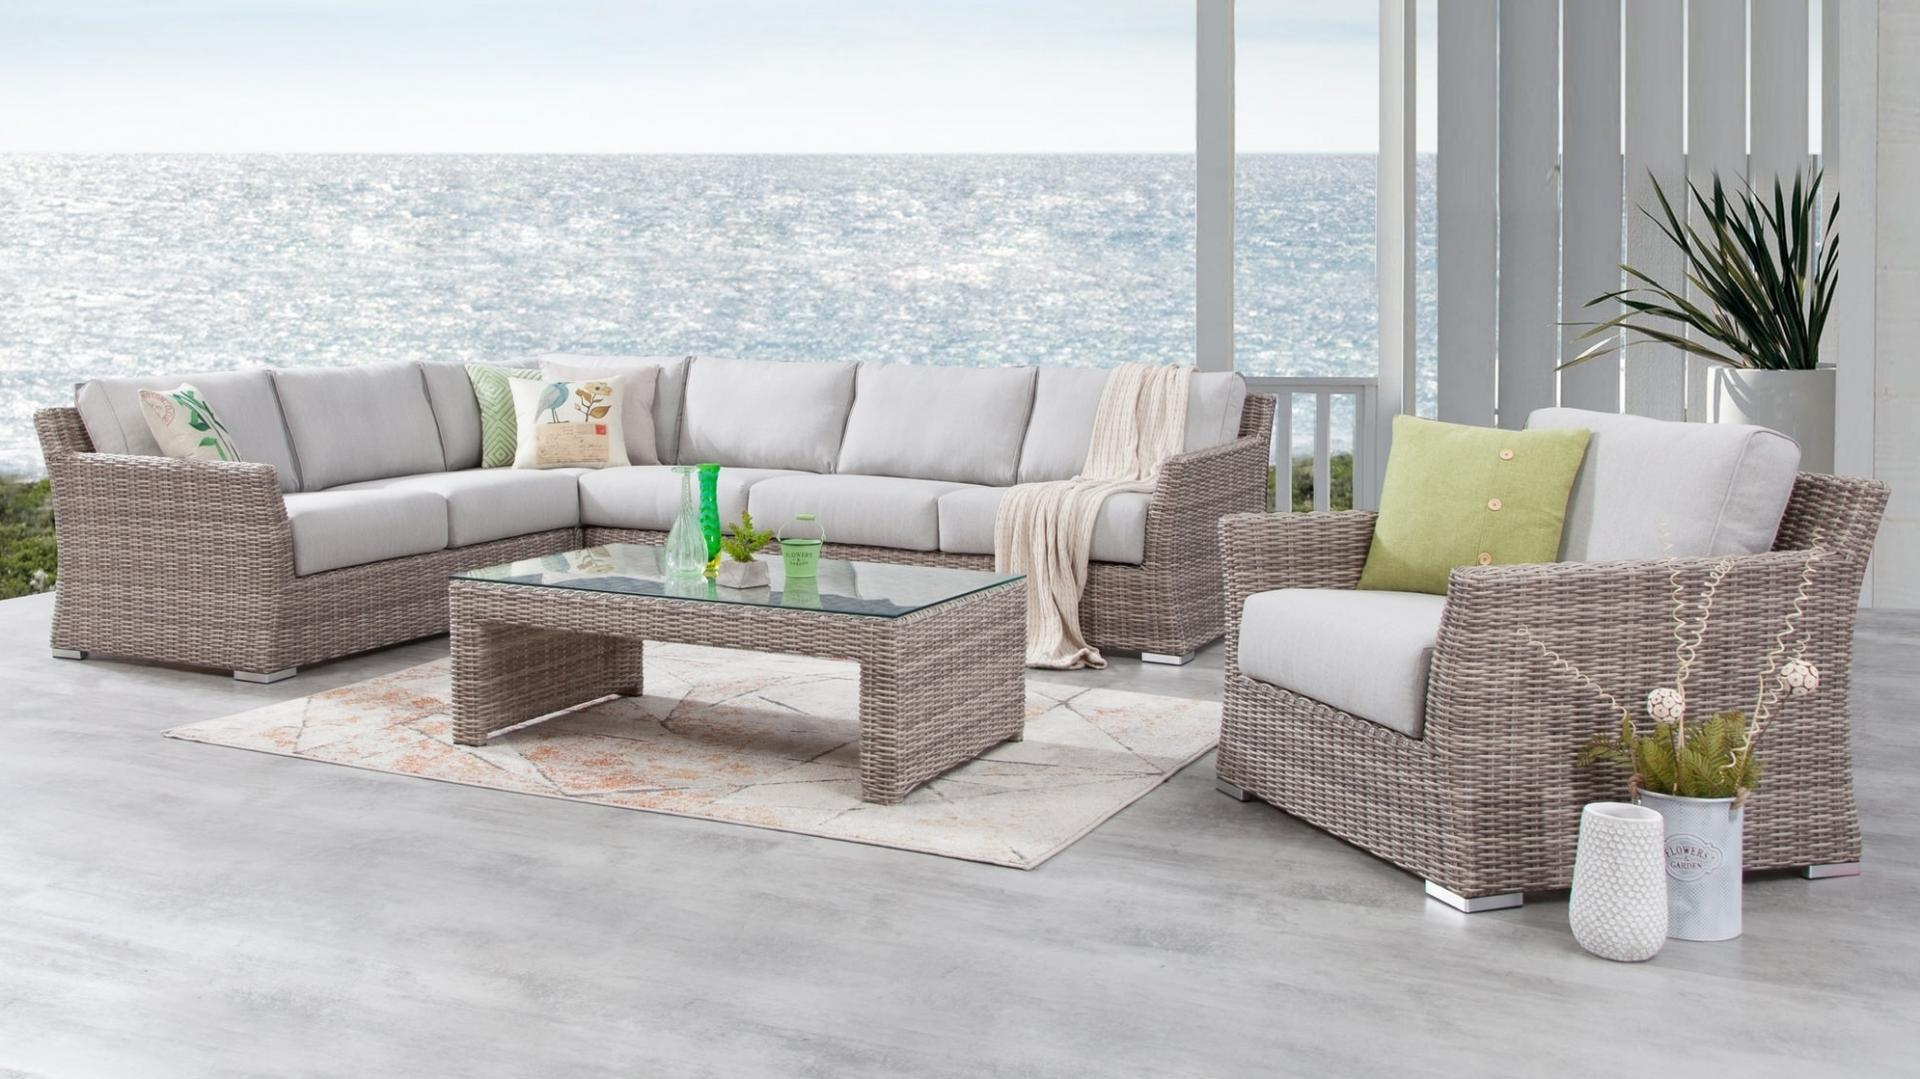 Rattan Lounge L Form Vidaxl Double Day Bed Poly Rattan Wicker